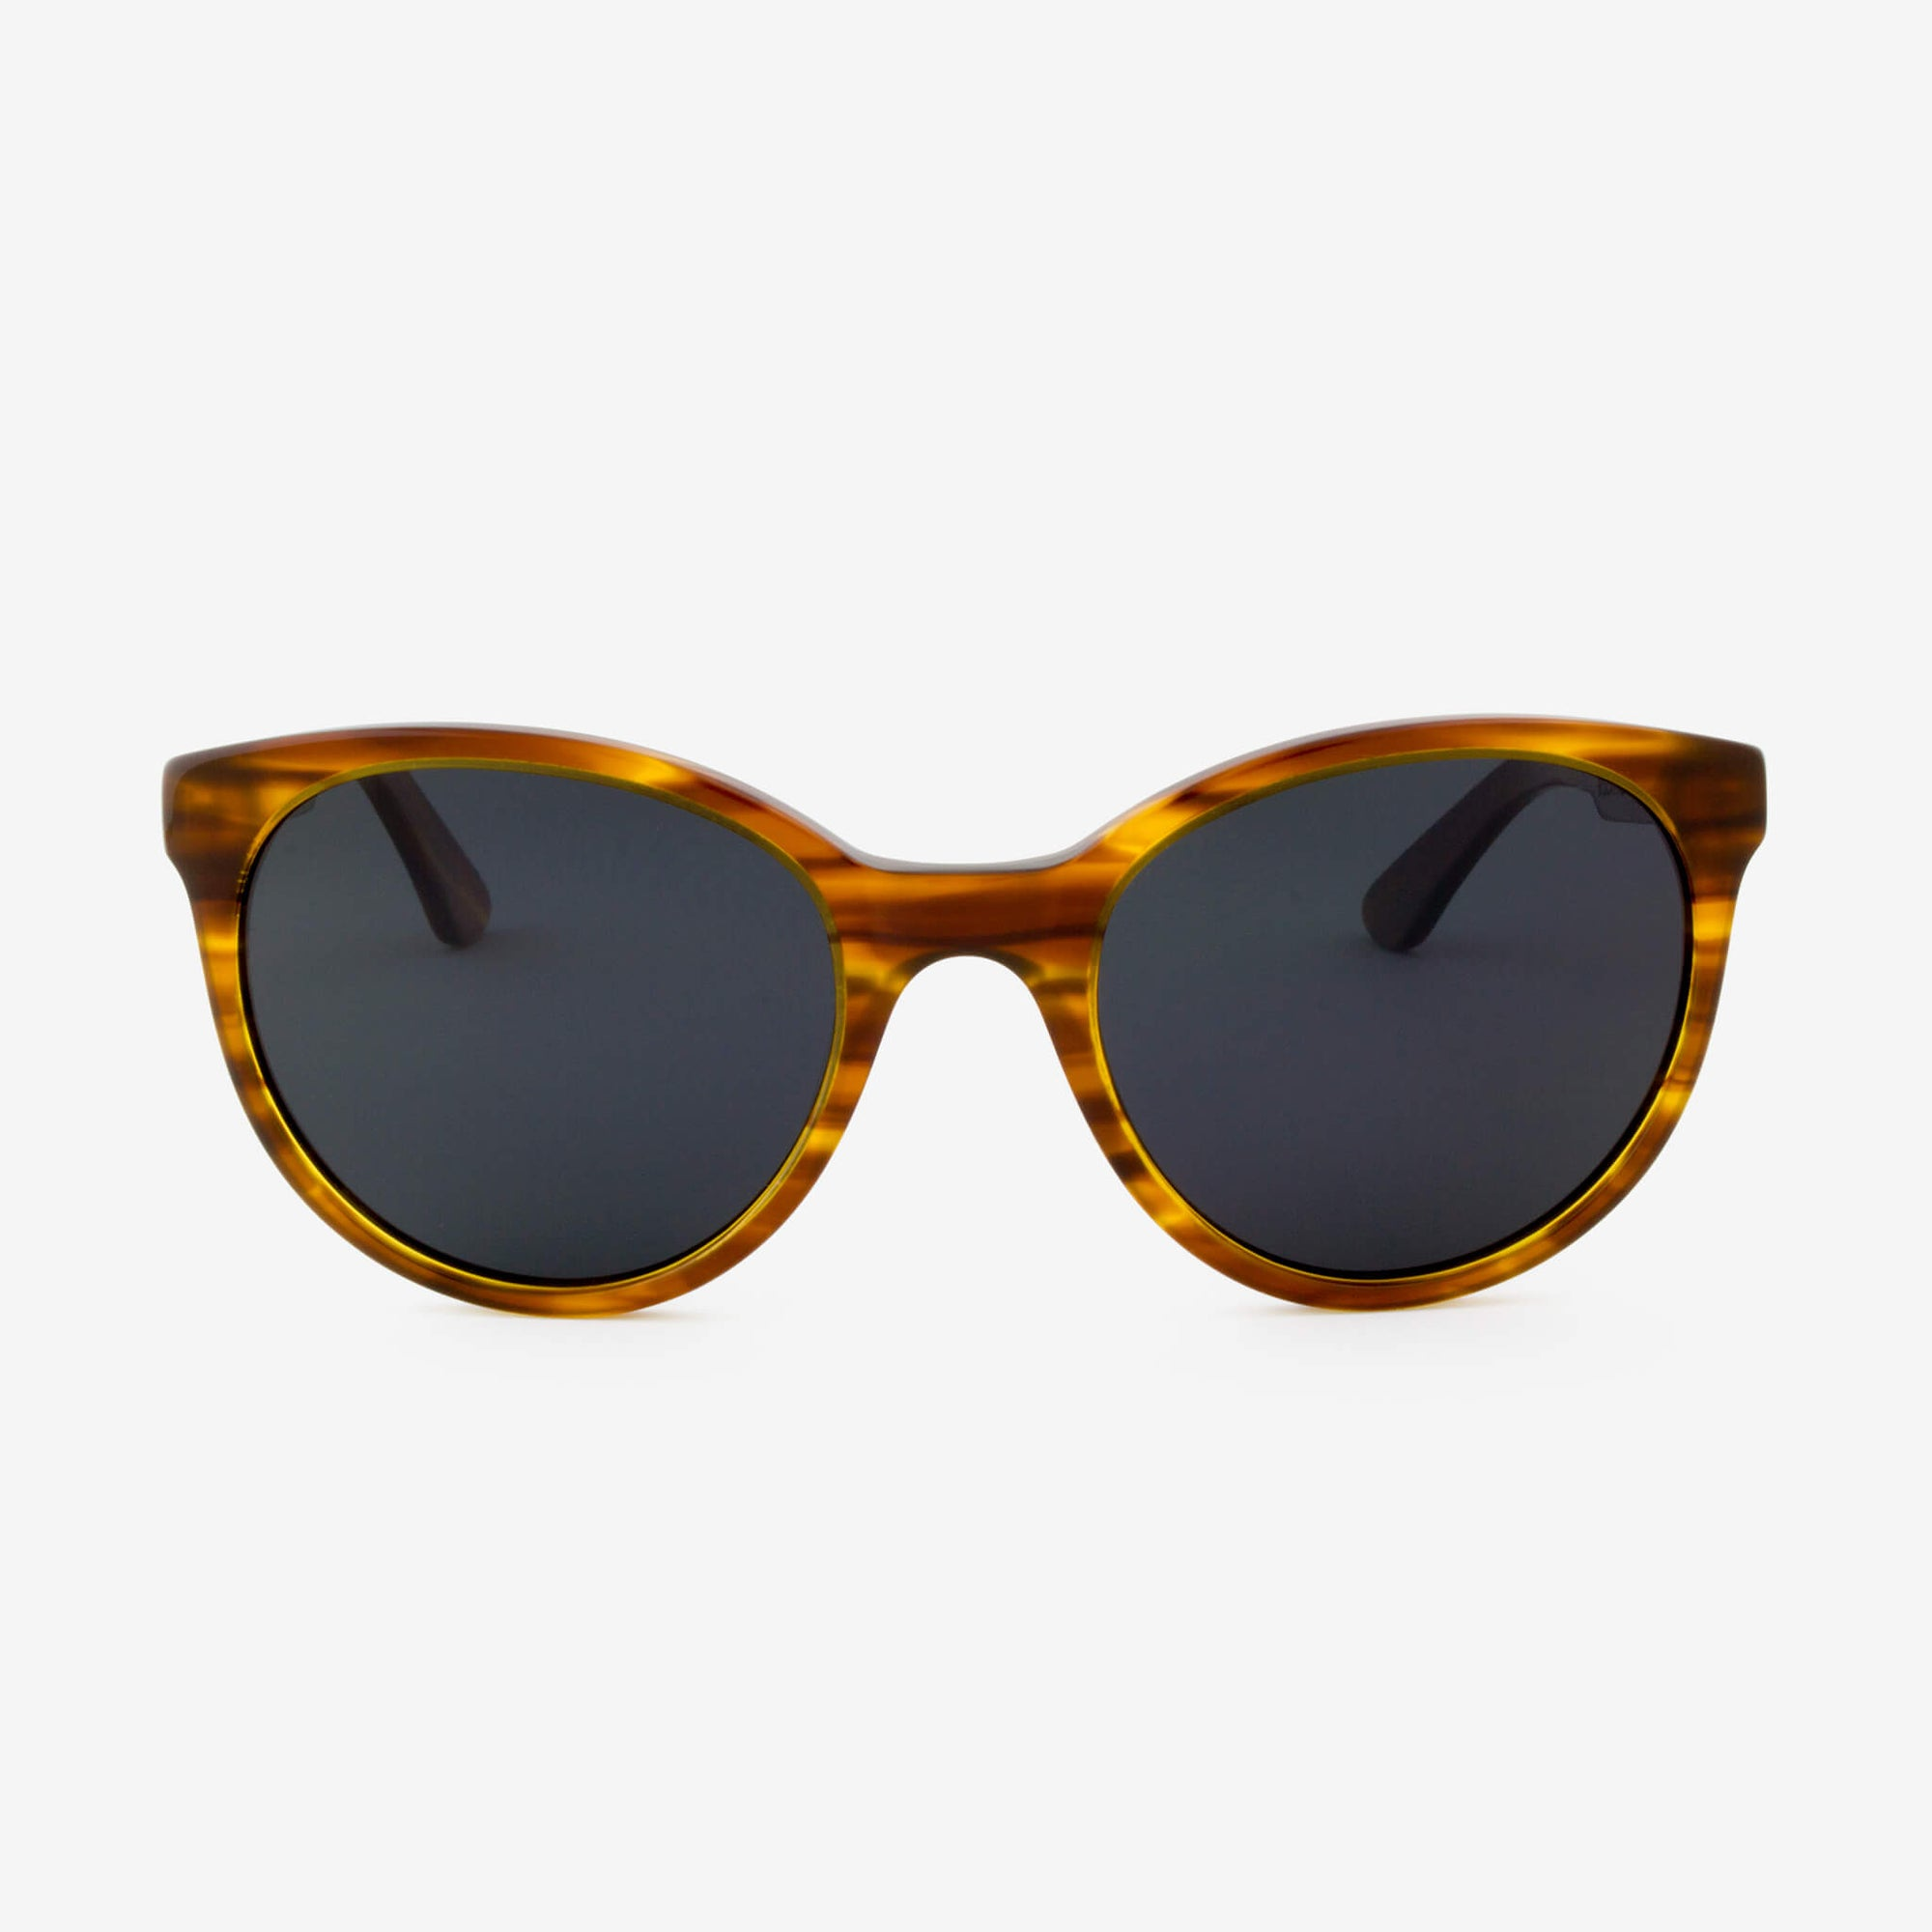 Biscayne Streaming Light acetate and wood sunglasses